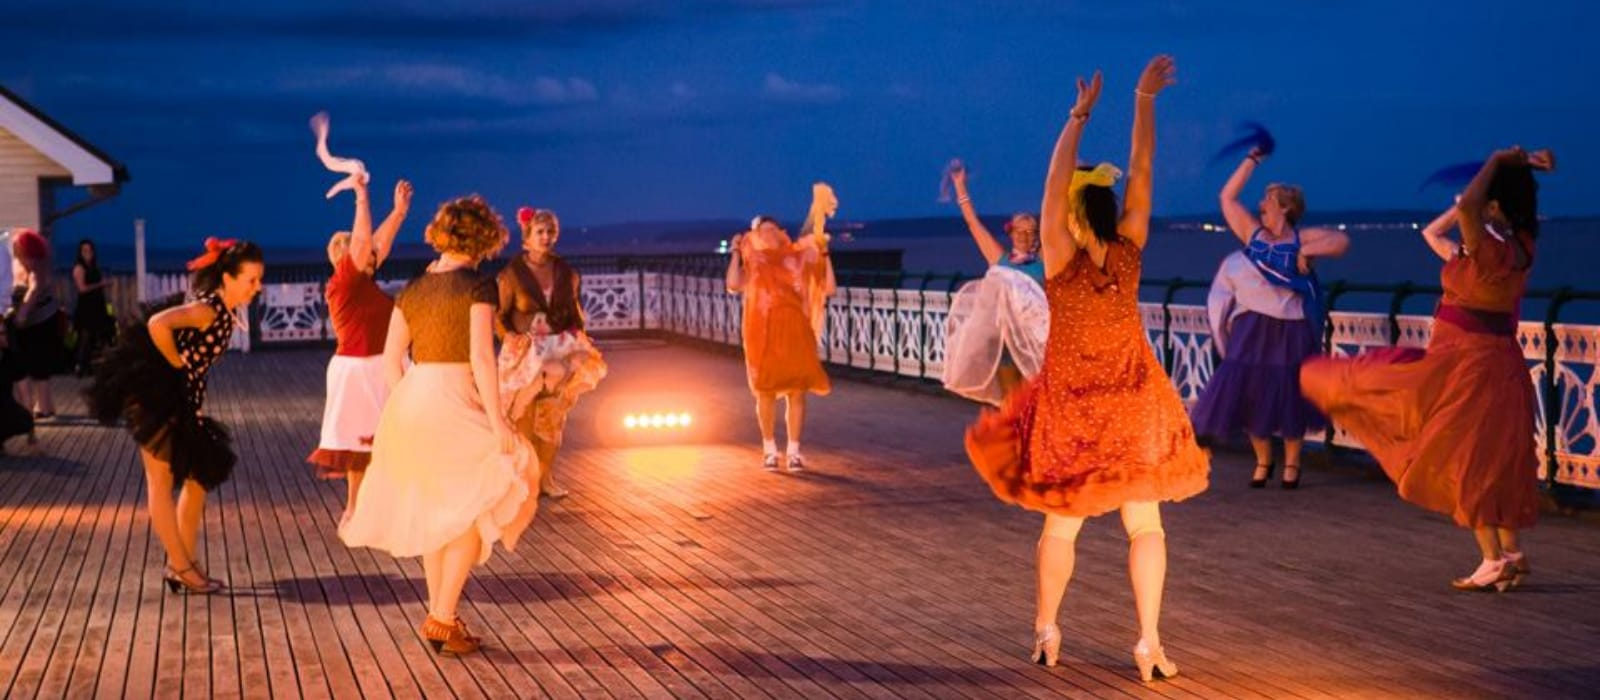 Penarth Pier Pavillion 50+ Dance Group performing in 1950s style dresses on the pier.